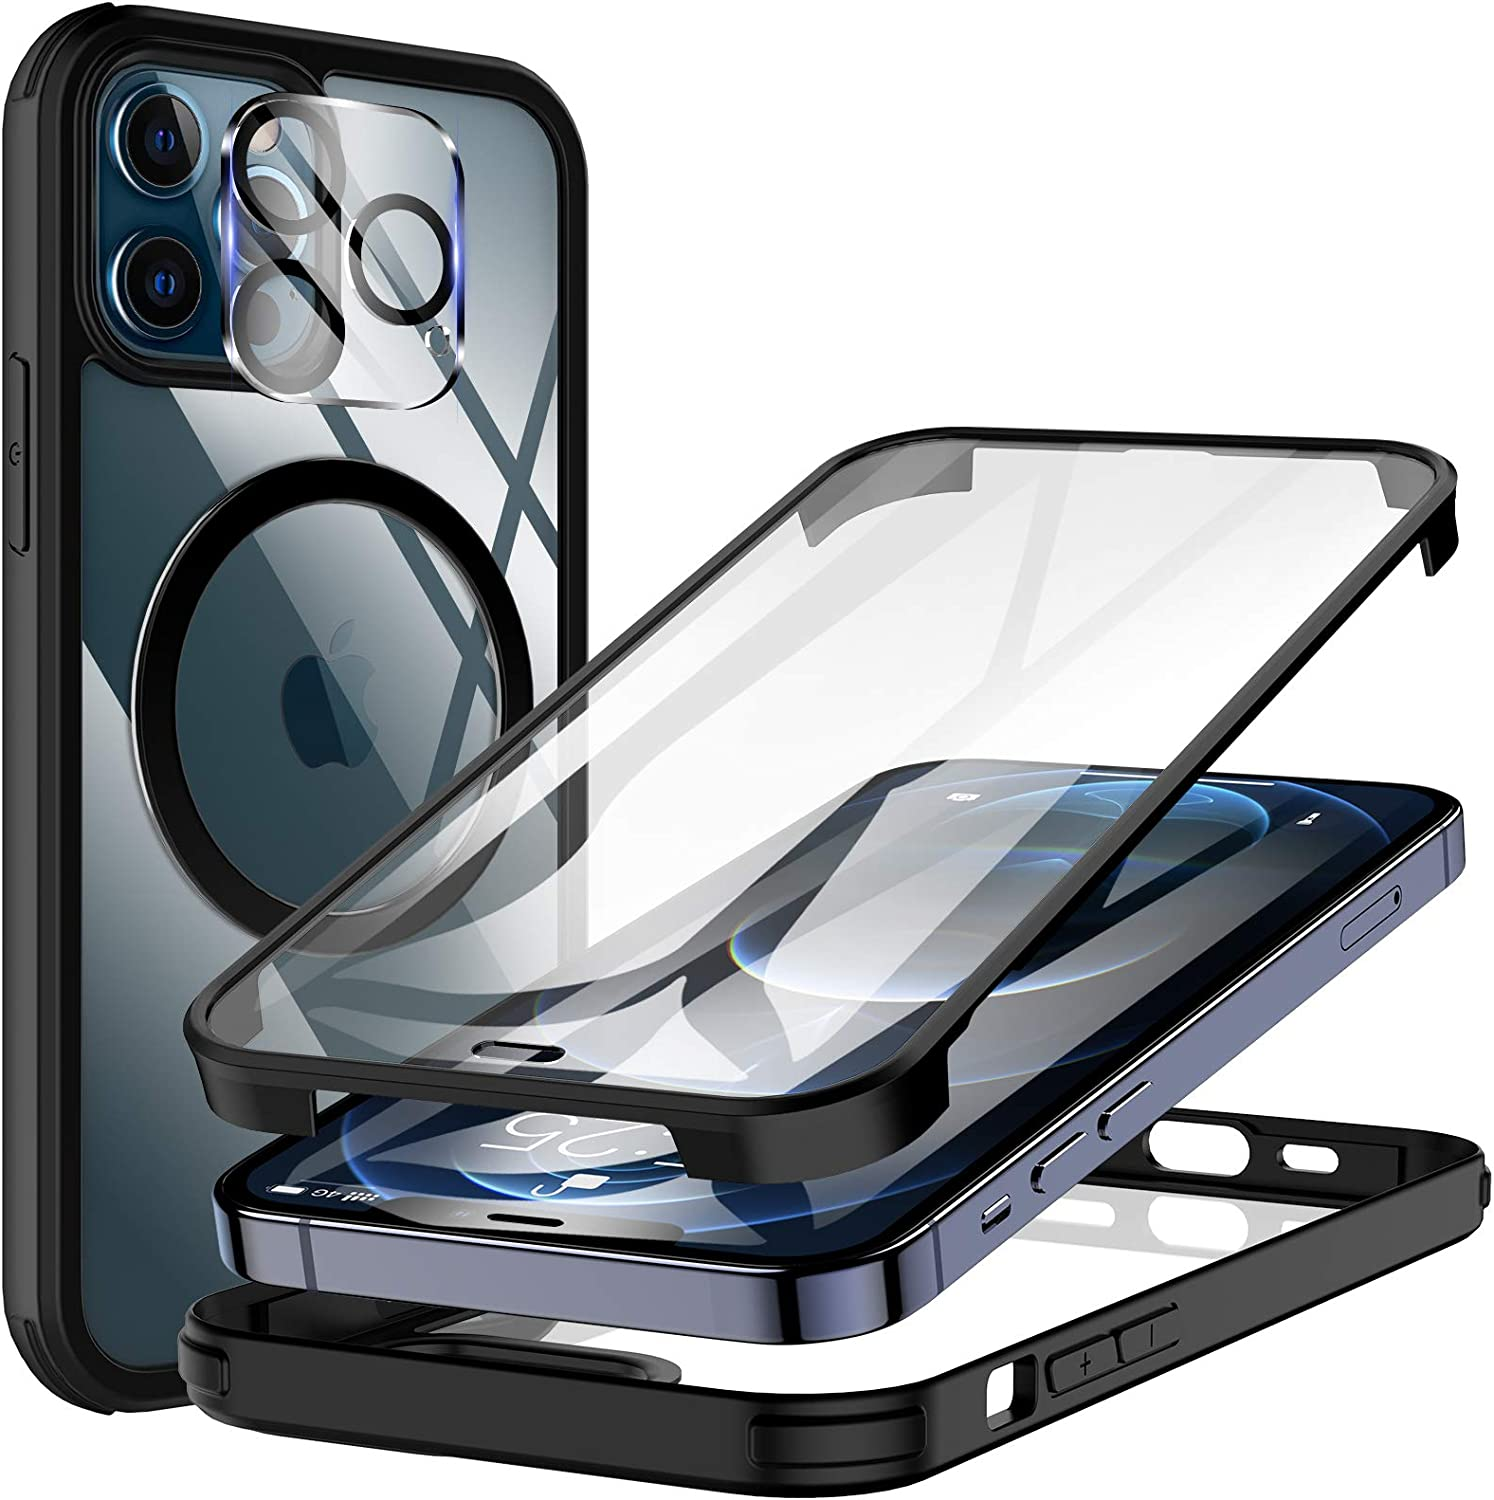 KKM Tempered Glass Case Designed for iPhone 12 Pro Max 6.7-inch, with Camera Lens Protector, Compatible with Magnetic Charger, Shockproof Bumper,Full Body Protective Cover - Black